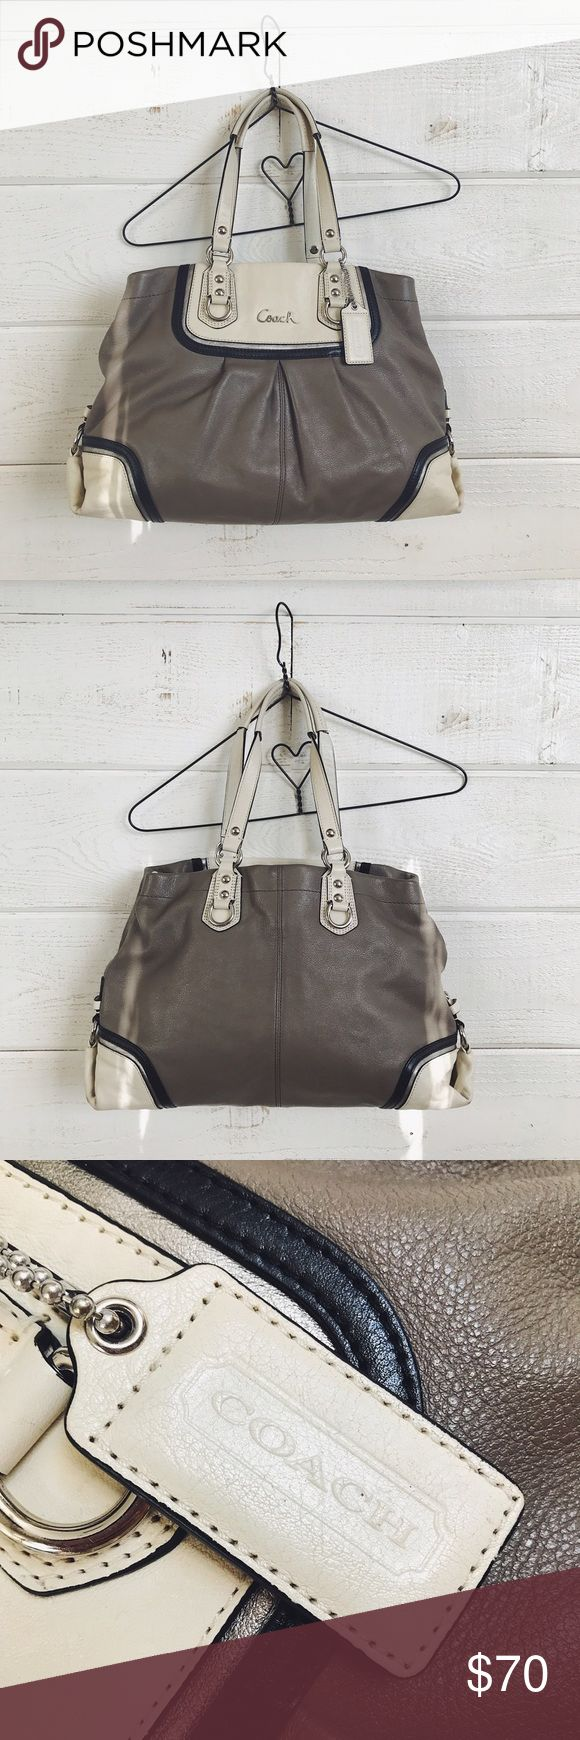 """Coach Purse this coach purse is lightly used, but is still in great condition! aside from the small scuffs on the bottom corners of the purse, it has been well taken care of and is extremely clean, especially the inside! it is 11.5""""x15"""". no trades. Coach Bags"""